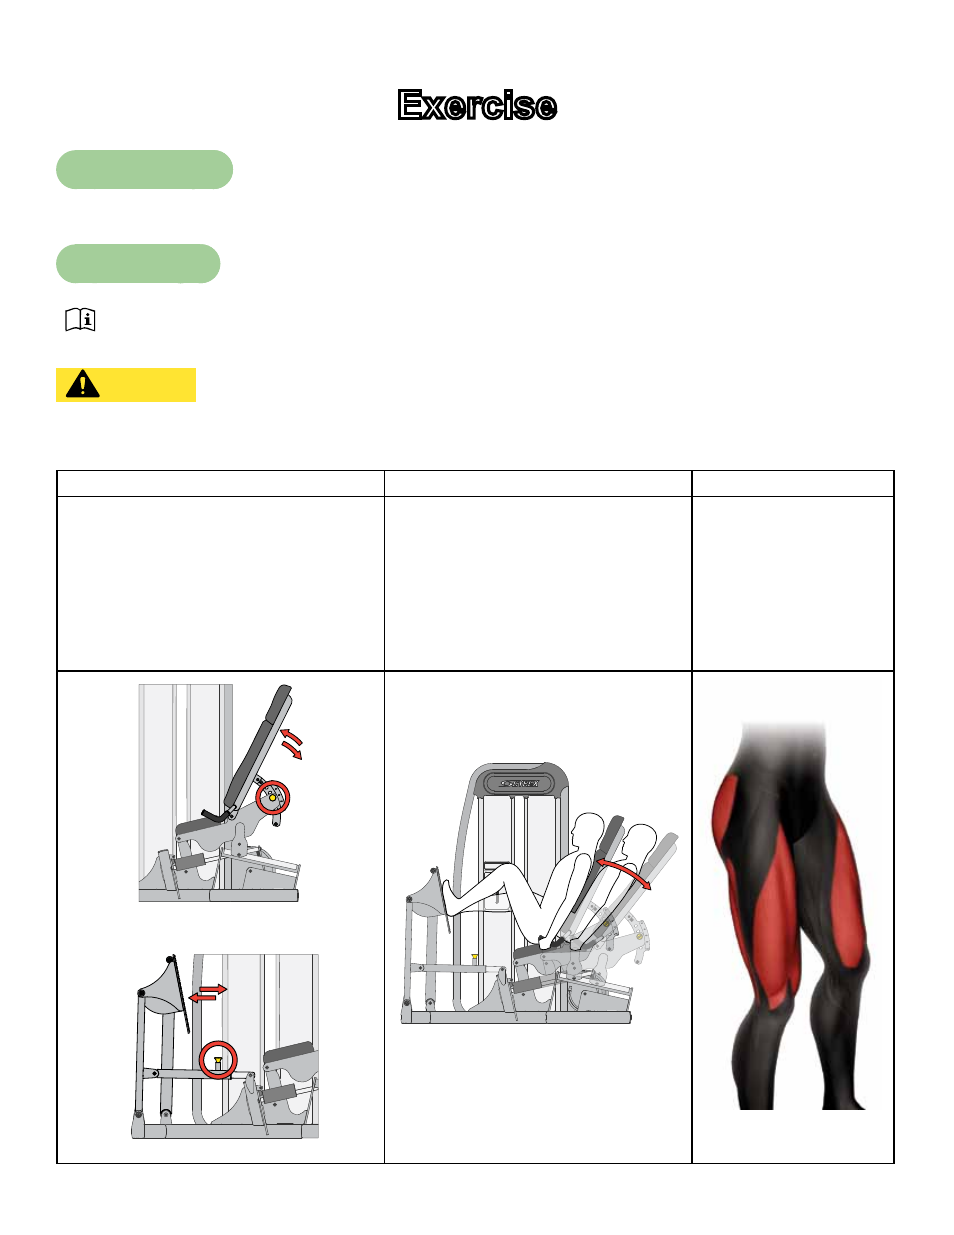 background image. 17. Cybex Owner's Manual. Exercise